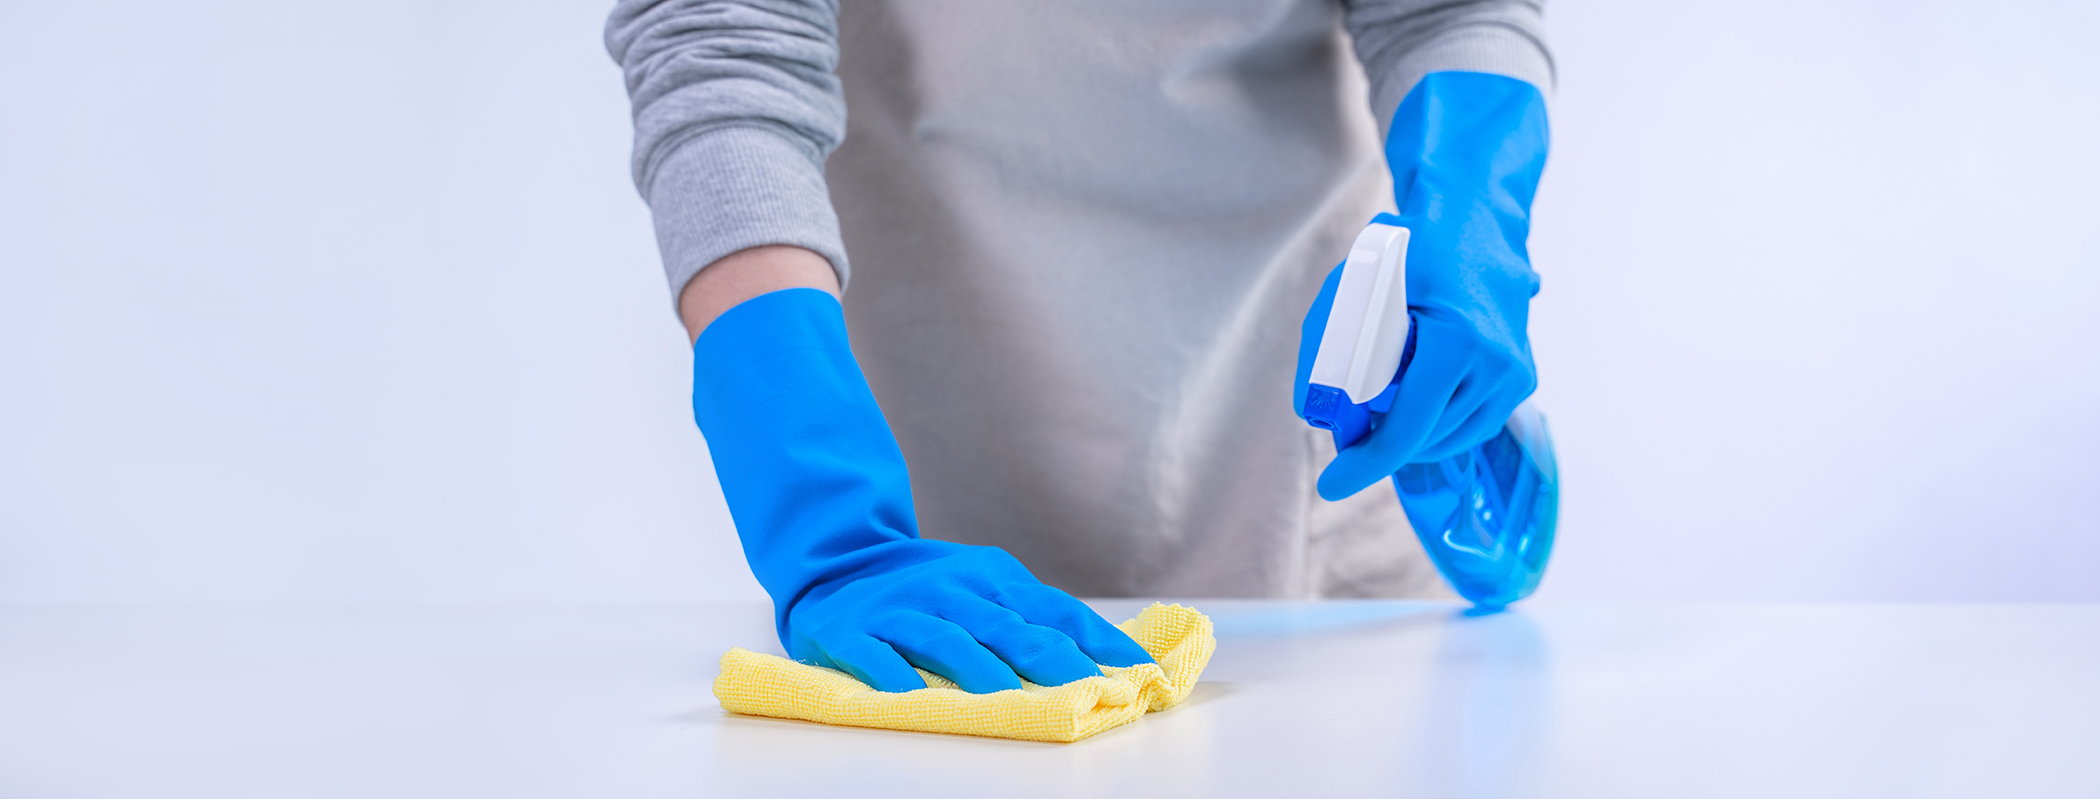 Young woman housekeeper in apron is cleaning, wiping down table surface with blue gloves, wet yellow rag, spraying bottle cleaner, closeup design concept.